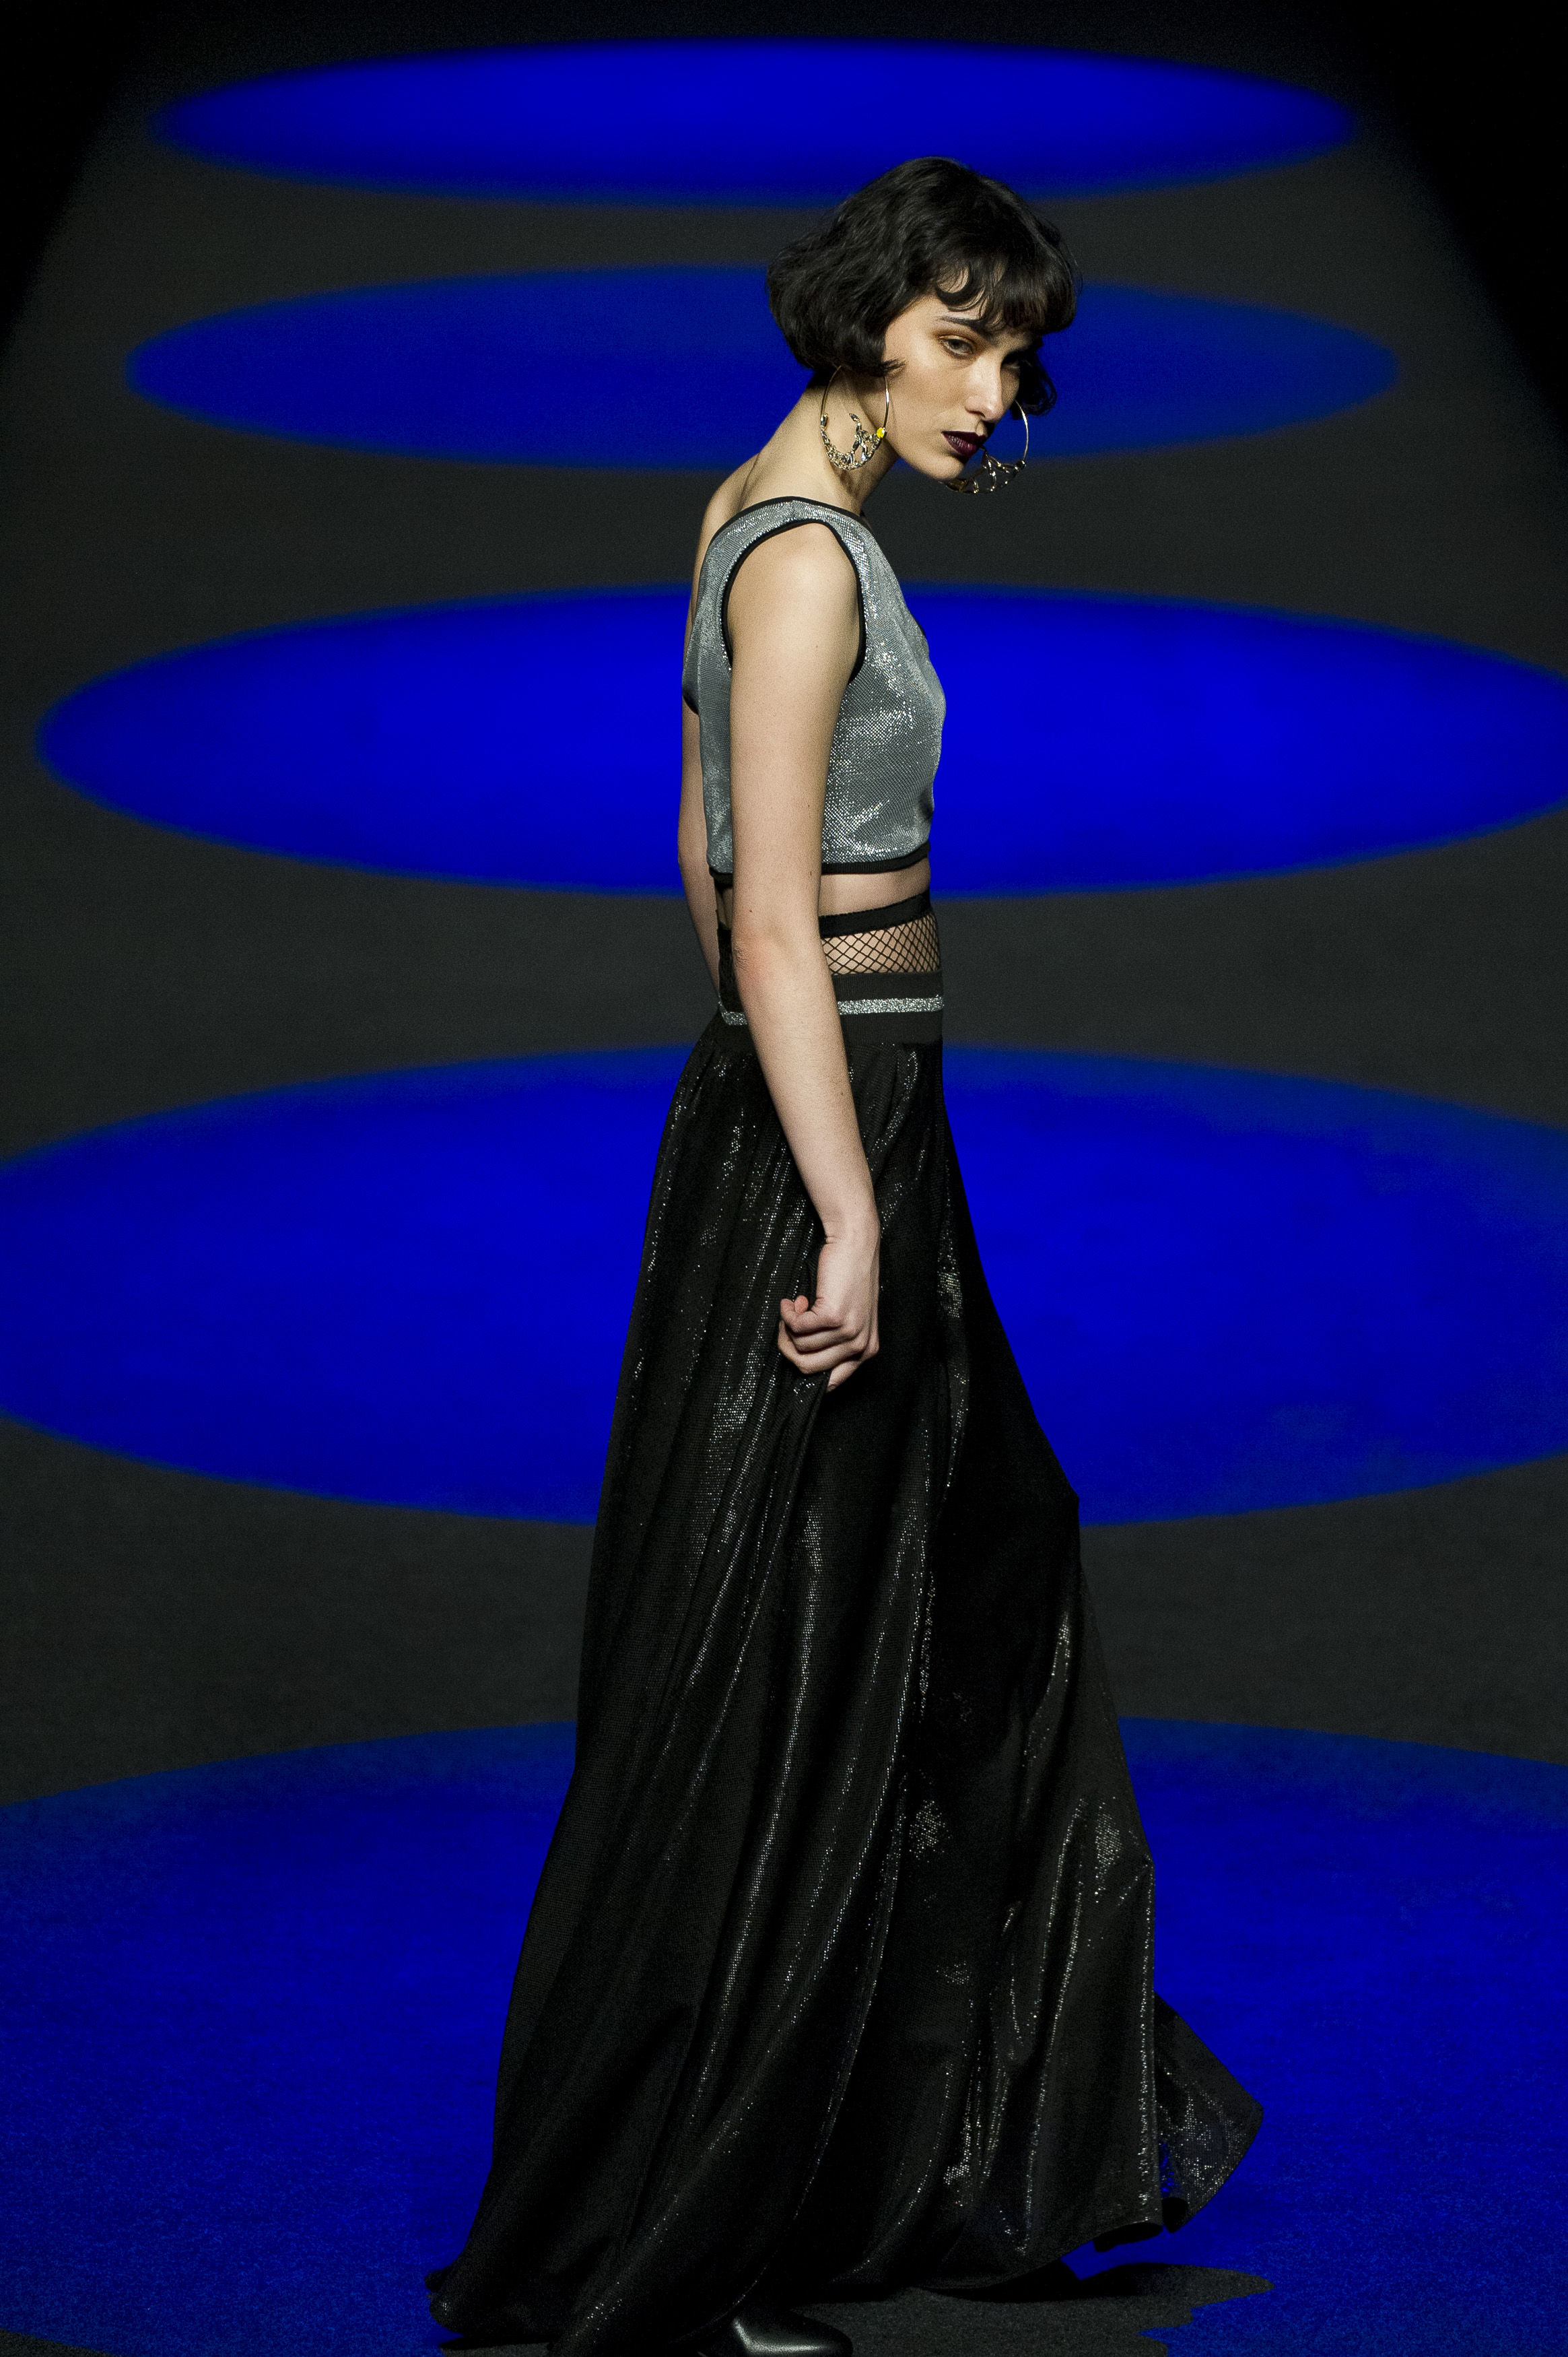 MADRID, SPAIN - FEBRUARY 20: A model walks the runway at the Esther Noriega show during Mercedes-Benz Madrid Fashion Week Autumn/Winter 2017/2018 at IFEMA on February 20, 2017 in Madrid, Spain. (Photo by Juan Naharro Gimenez / Getty Images for Esther Noriega)